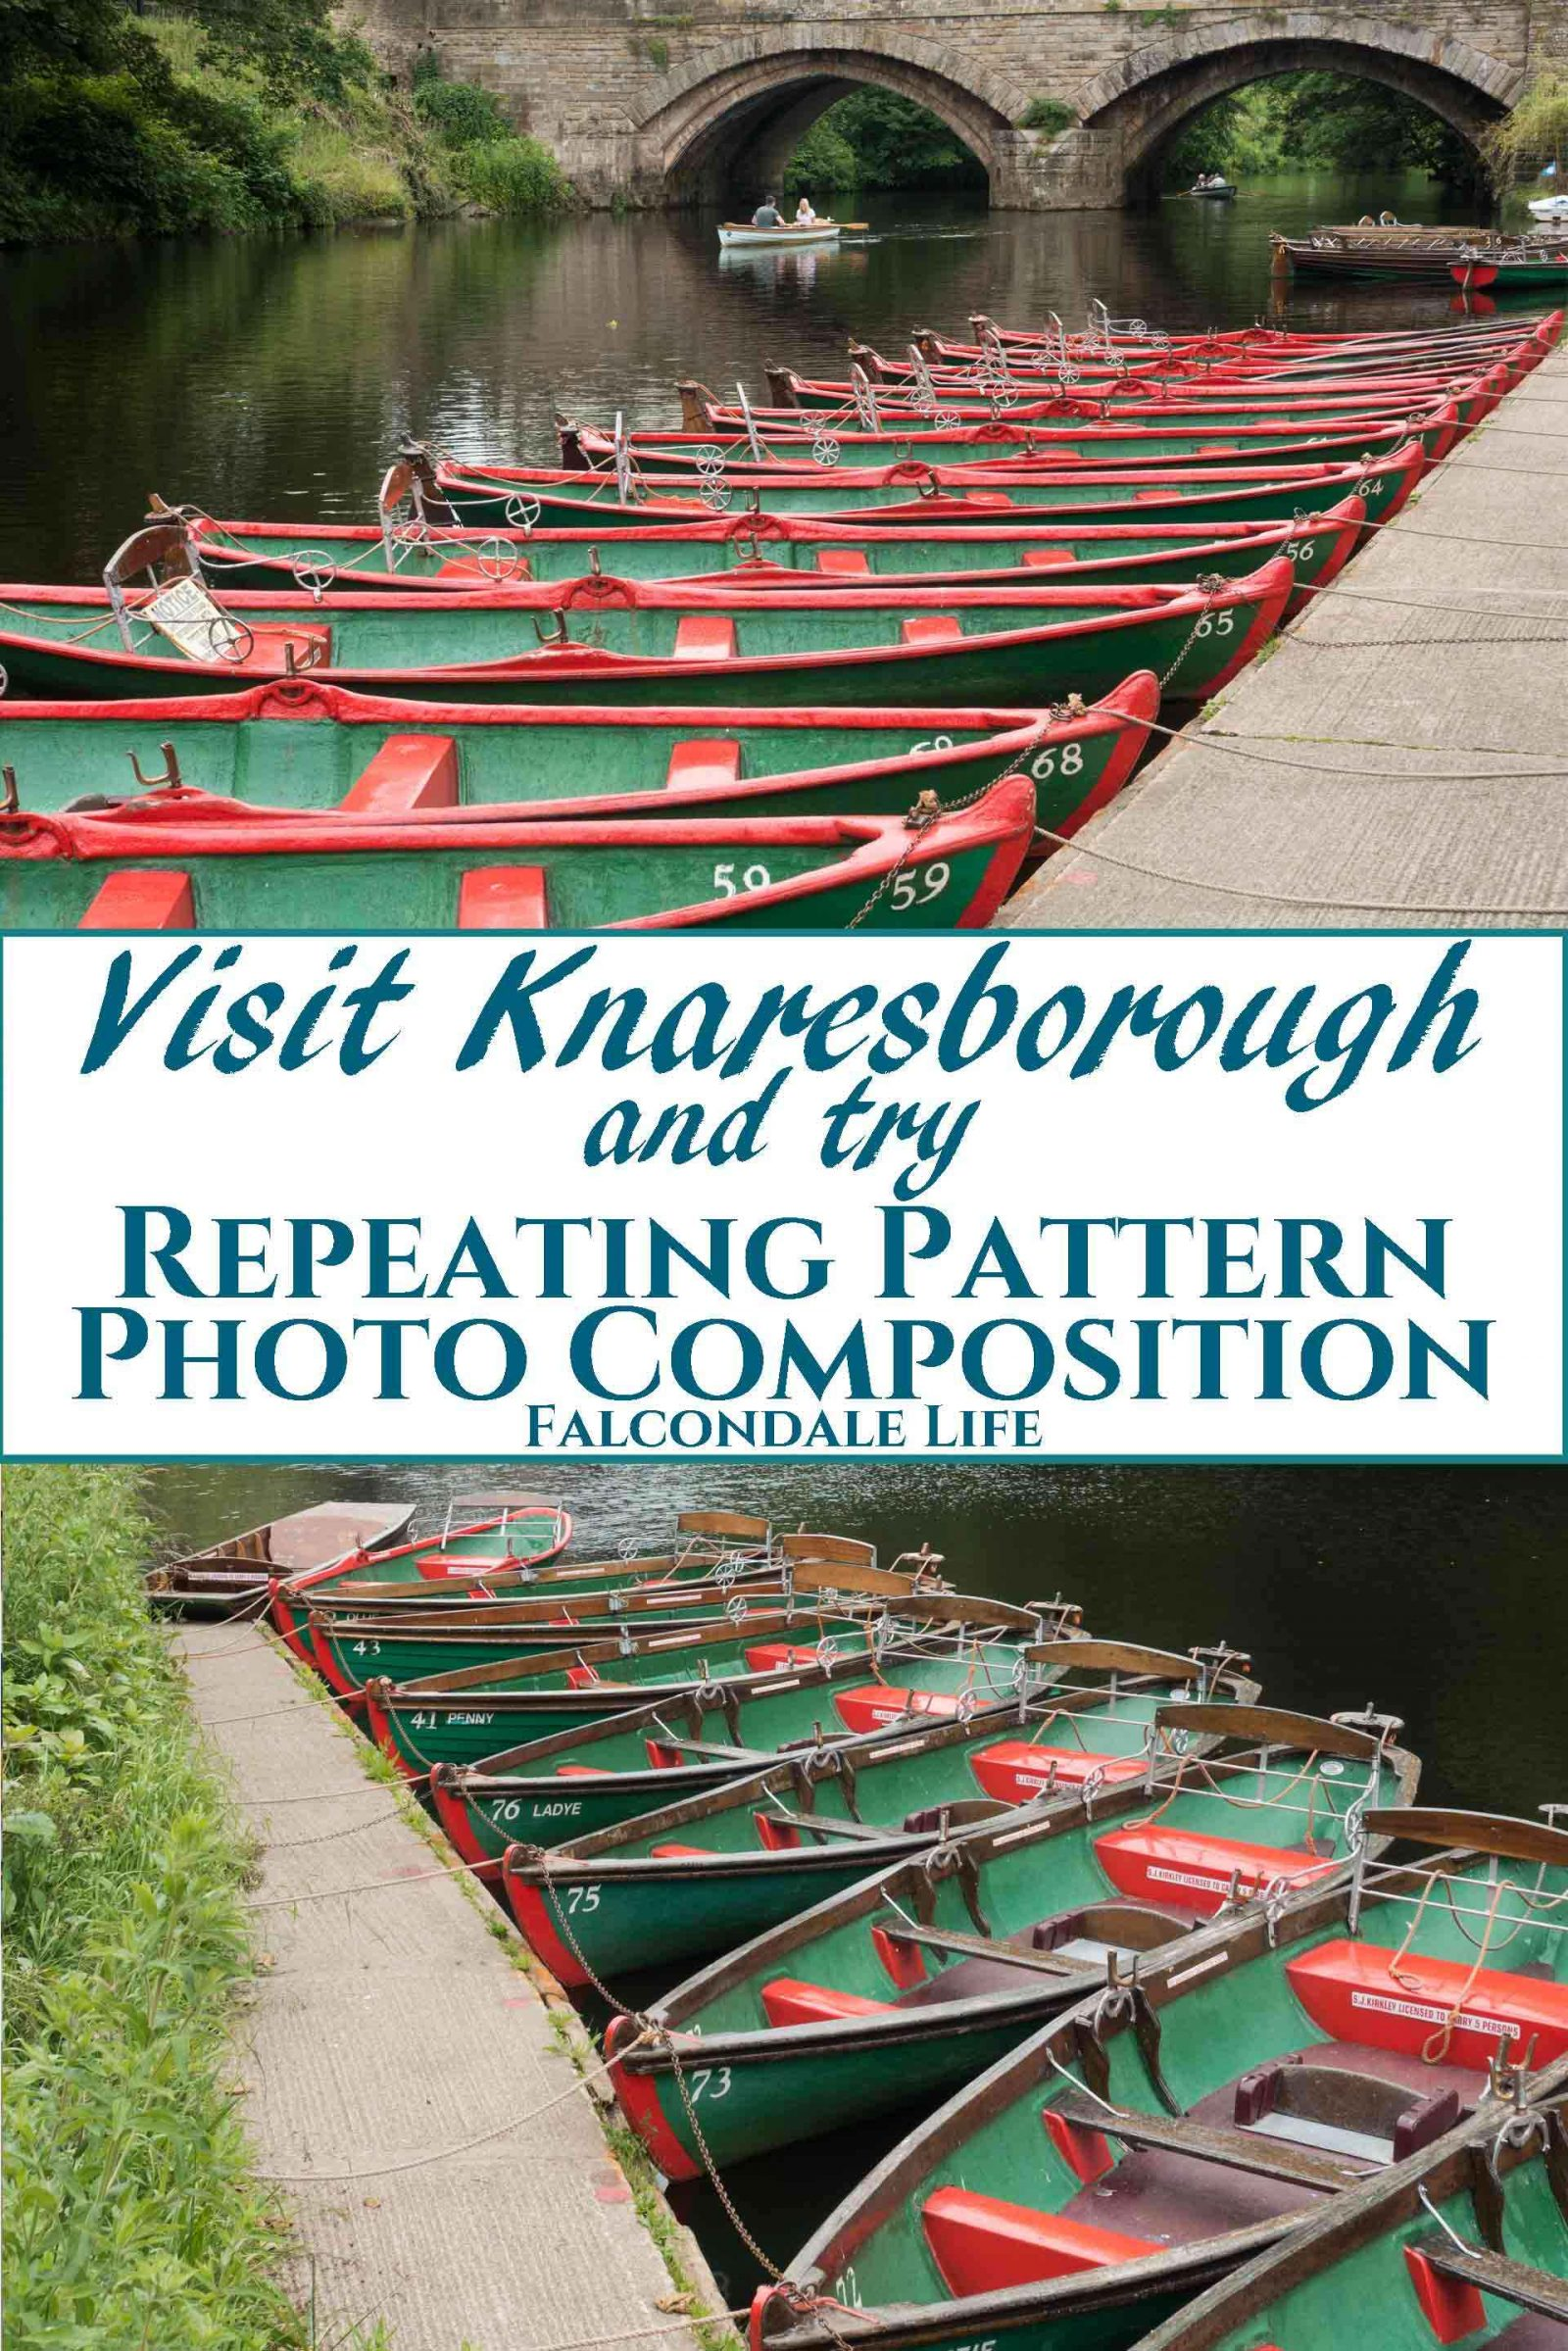 Visitor information for the river Nidd at Knaresborough Waterside in North Yorkshire. See the rowing boats and use these repeating pattern photo composition tips. Visit Knaresborough Waterside and try Repeating Pattern Photo Composition on Falcondale Life blog. Image description: lines of rowing boats moored on the river, plus blog title.